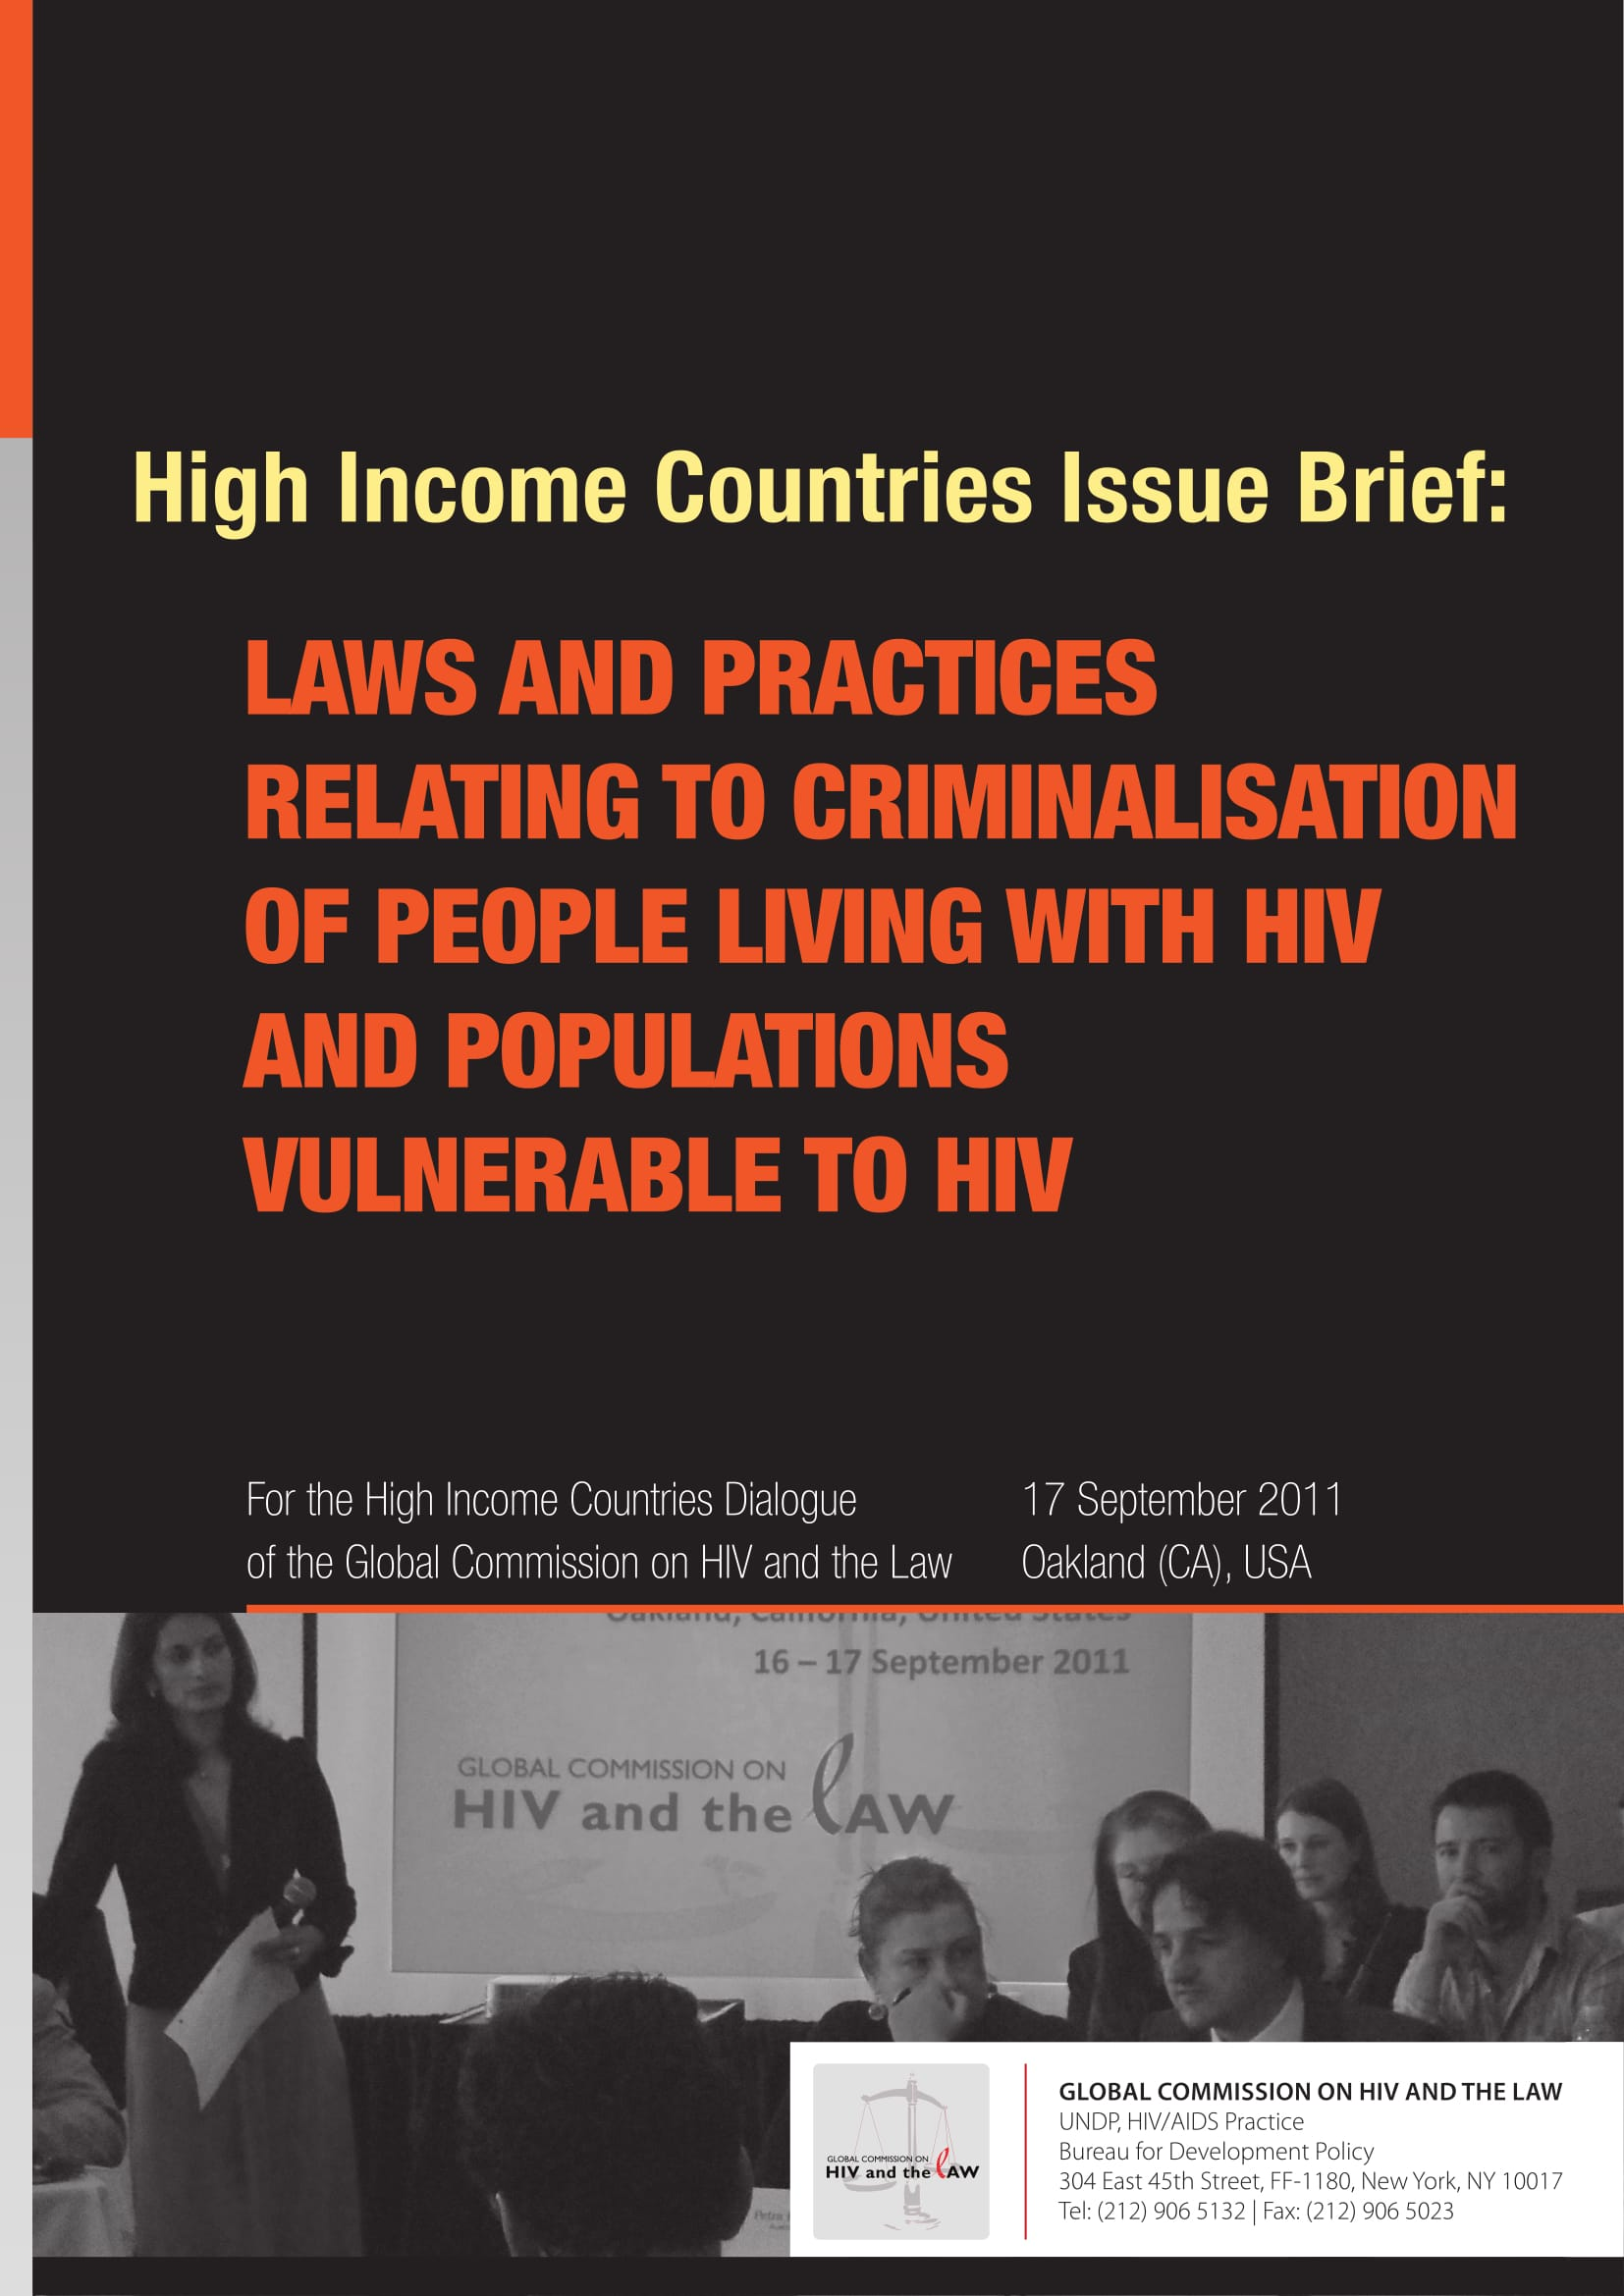 Regional Issue Brief: Laws and practices relating to criminalisation of people living with HIV and populations vulnerable to HIV